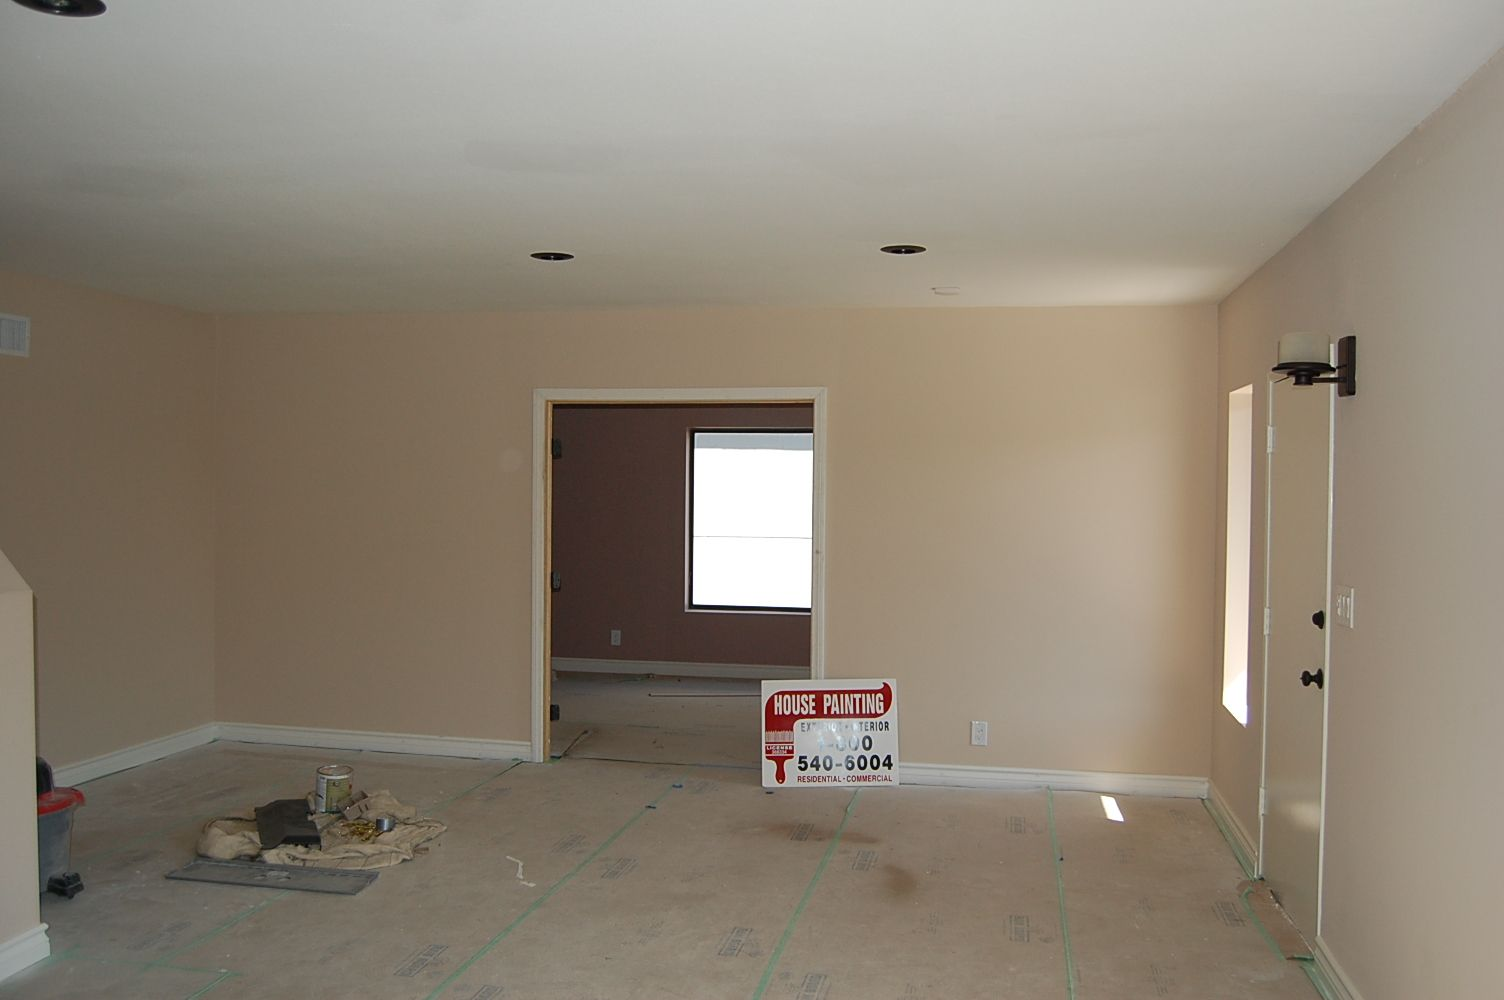 Master Bedroom Interior Painting Looking For Professional House In Stamford Ct